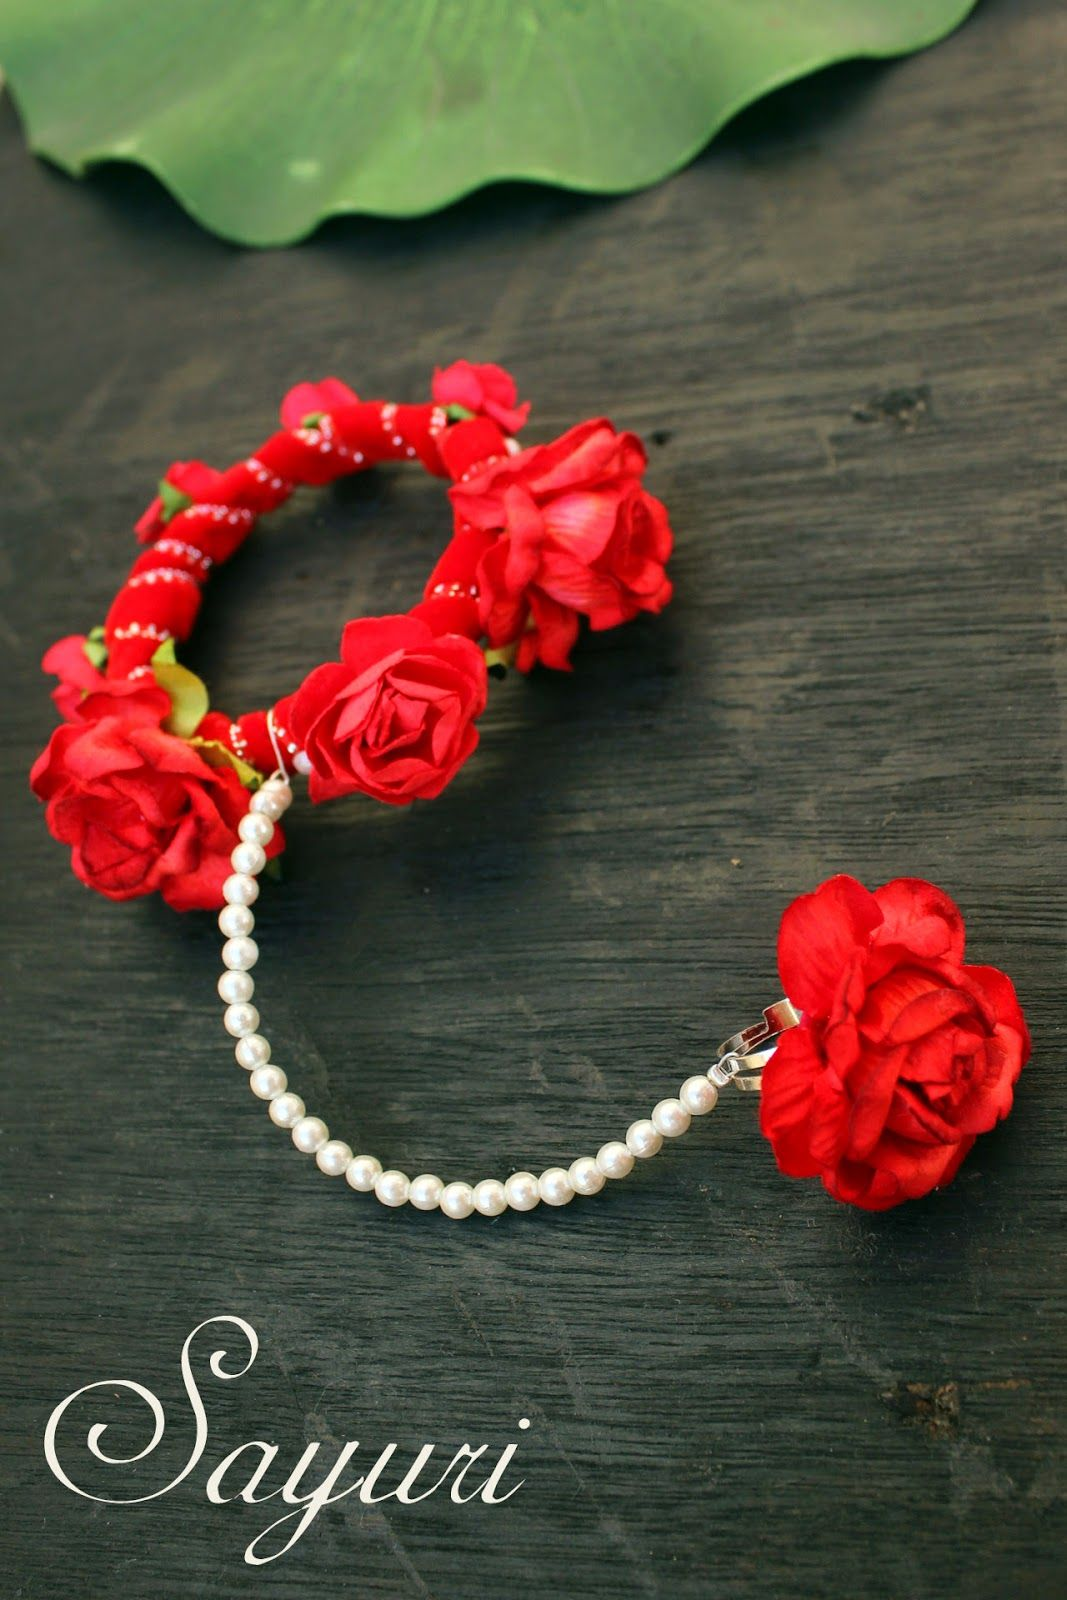 The Cheapest Price Women Rhinestone Red Rose Flower Brooch Pin Wedding Party Jewelry Gift Kindly Jewellery & Watches